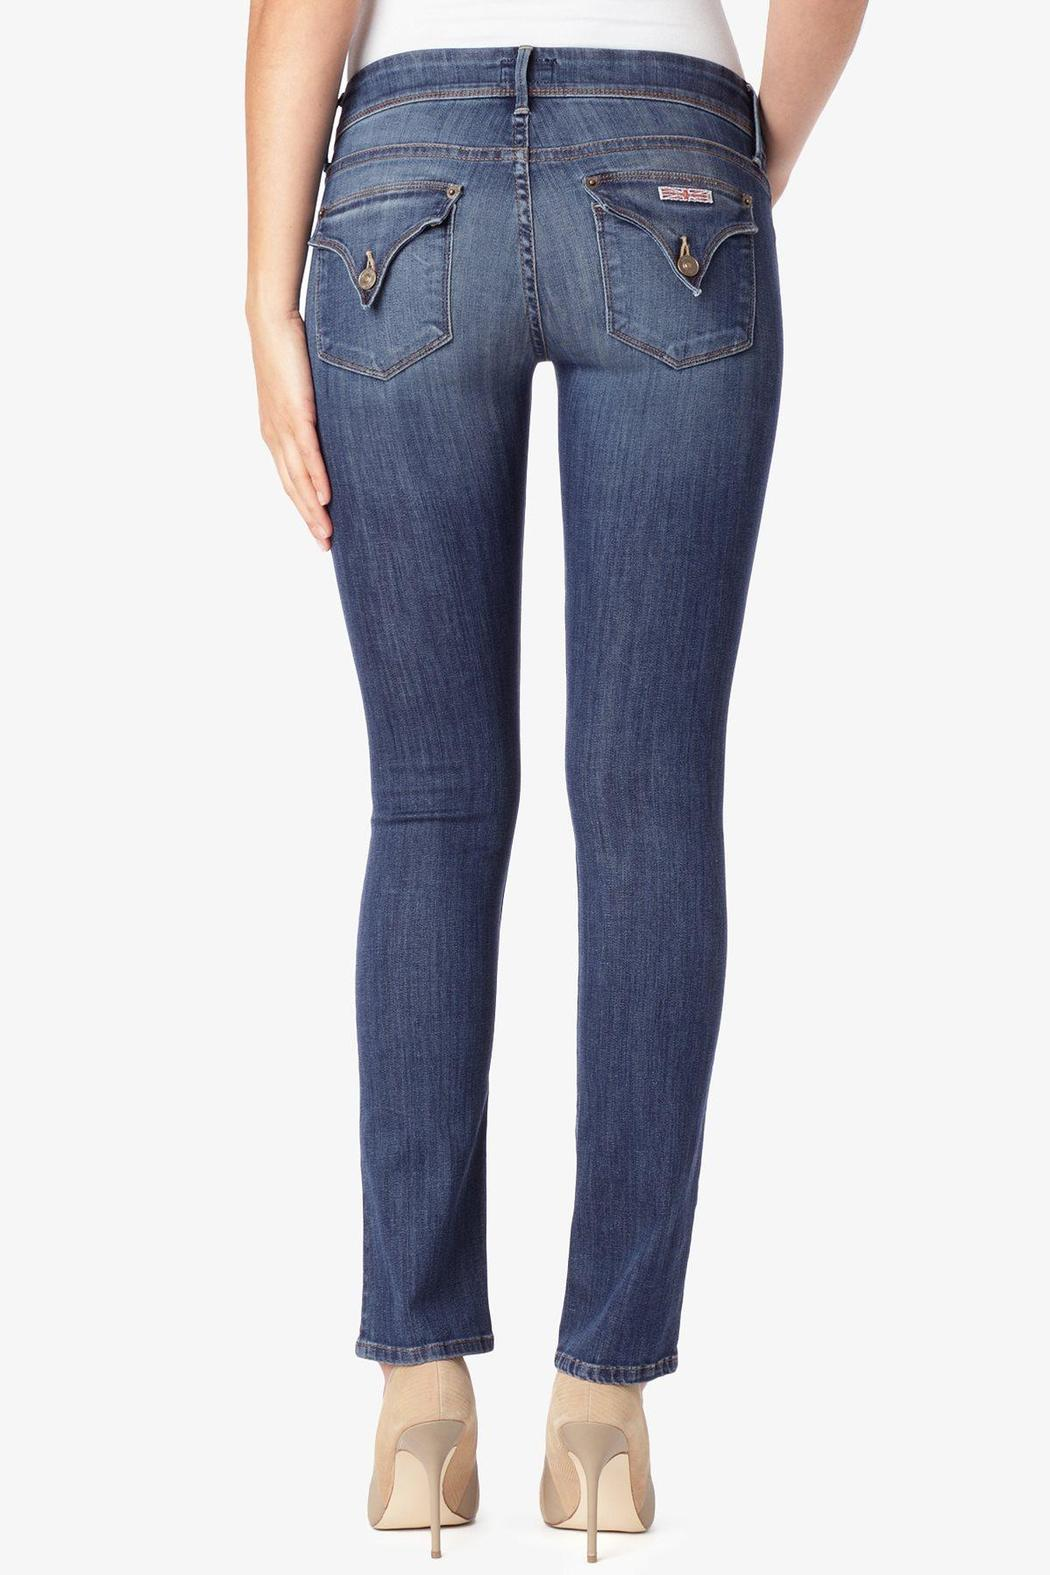 Hudson Jeans Ginny Straight Loveless Jeans - Front Cropped Image